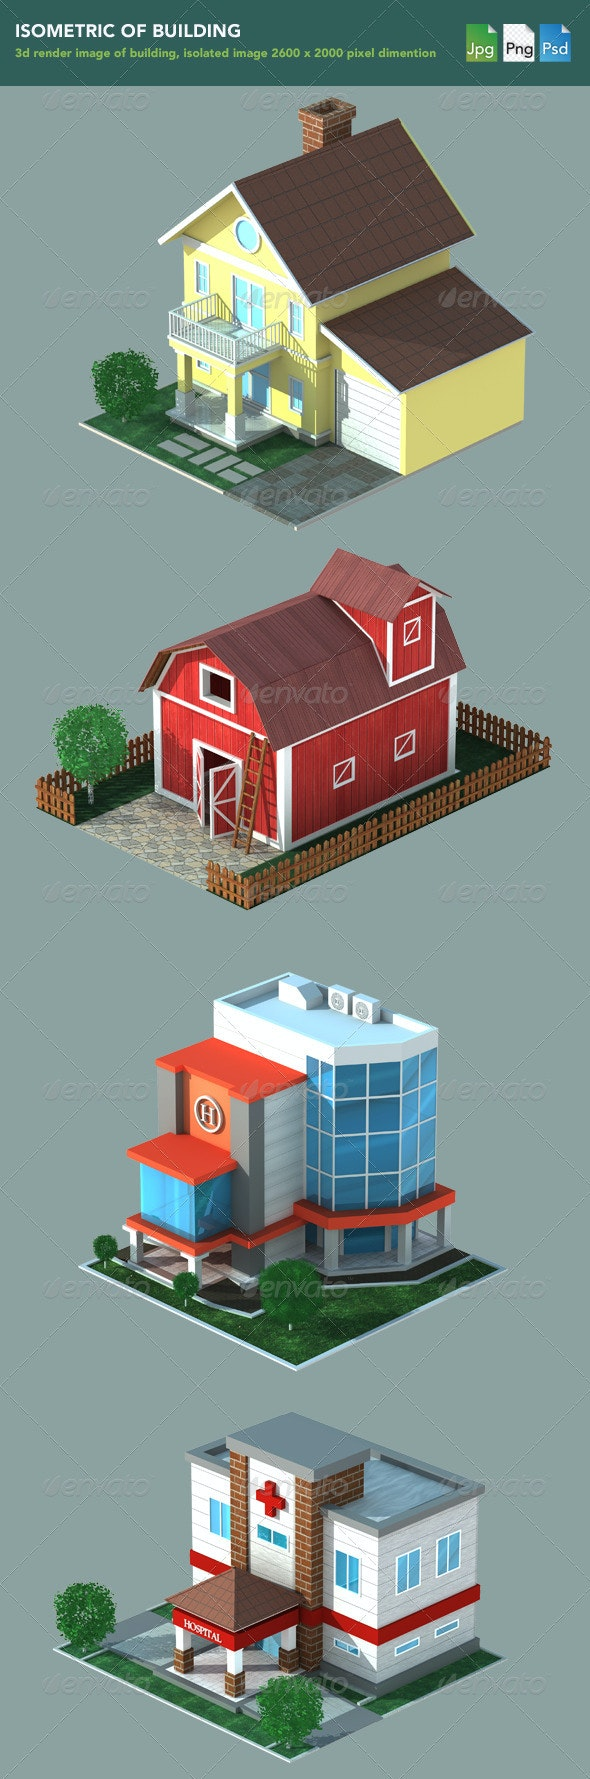 Isometric 3D Render of Building  - Objects Illustrations